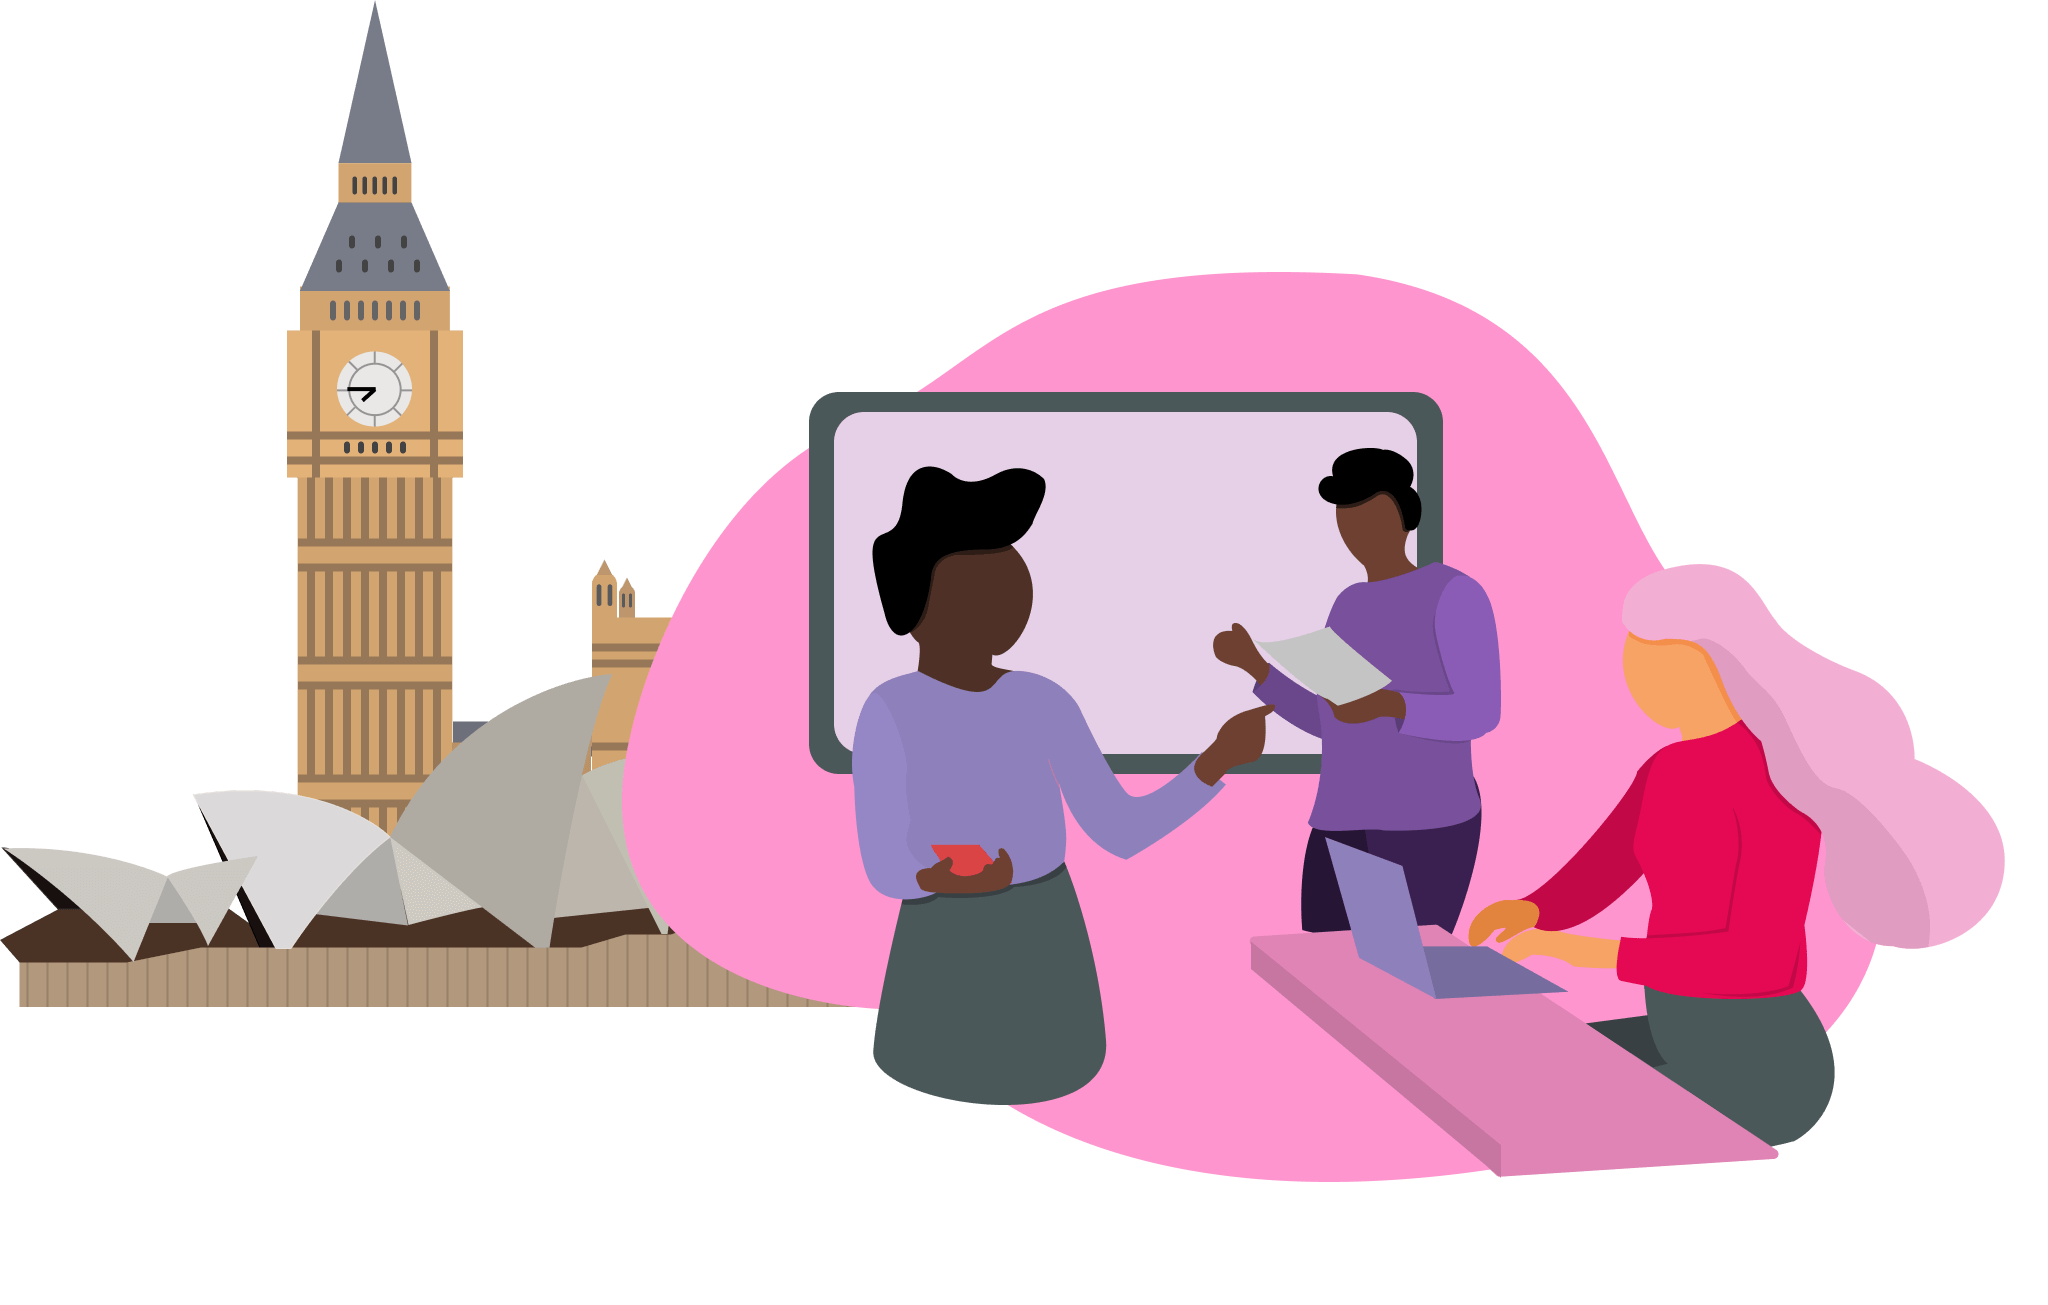 Illustration of staff and students working together around their computers with the Palace of Westminster and the Sydney Opera House in the background